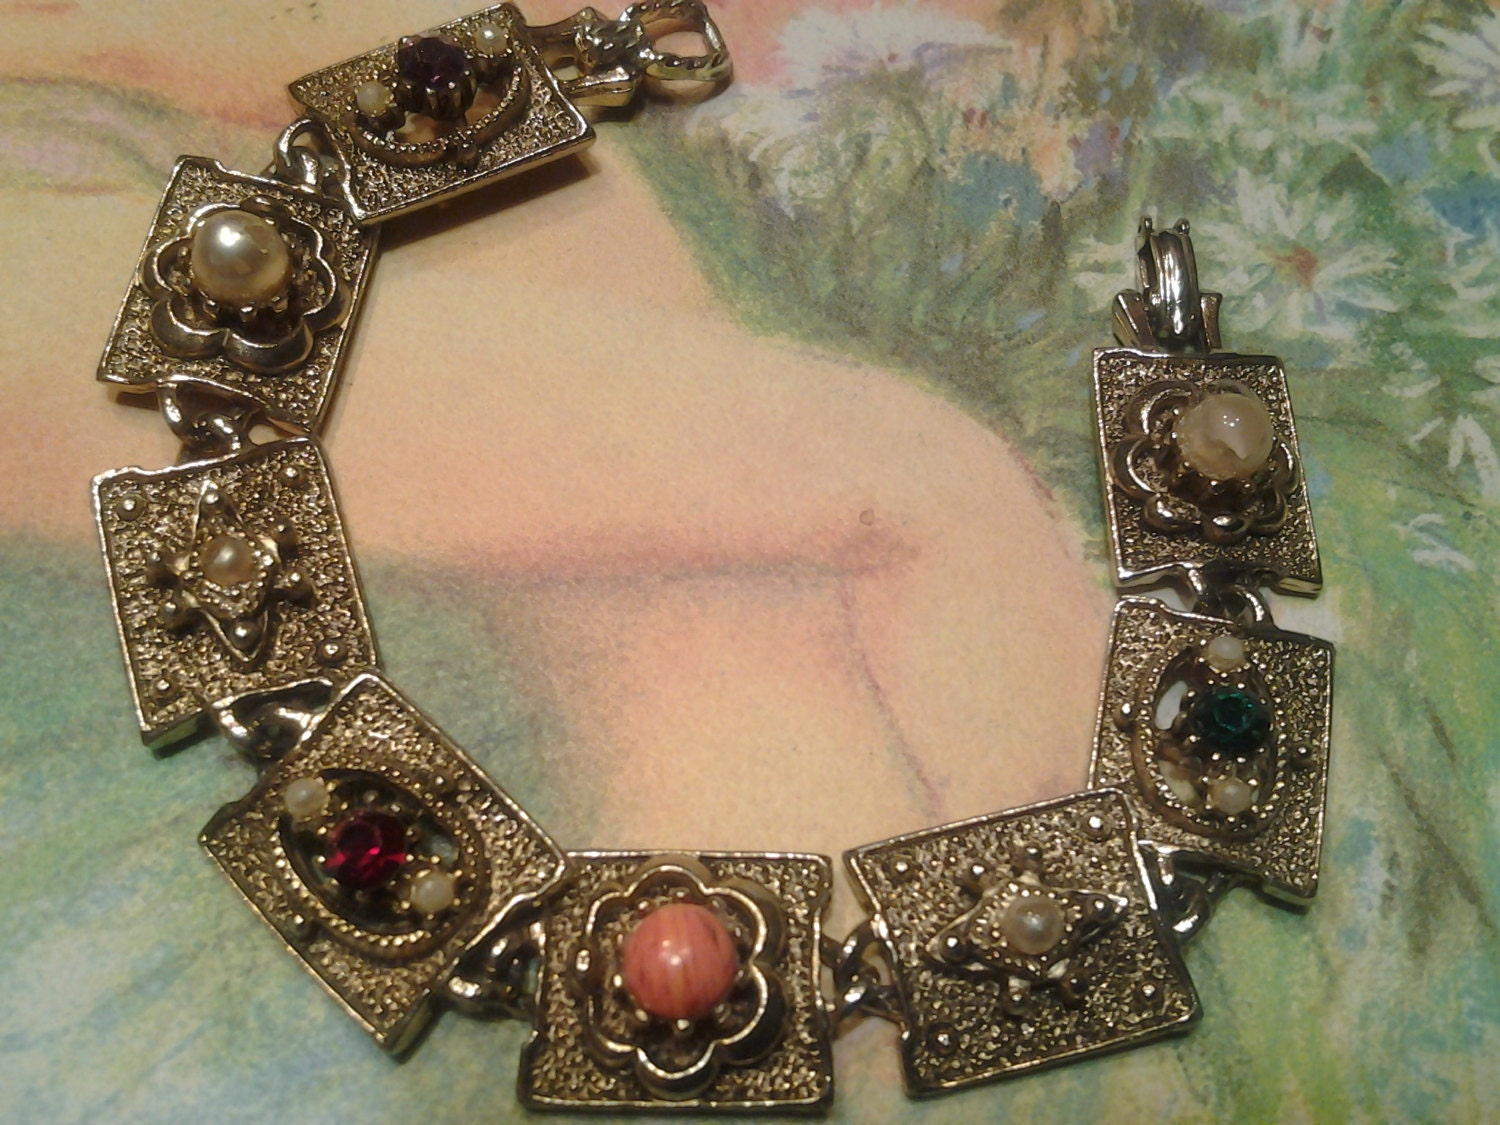 vintage costume jewelry antique charm bracelet by